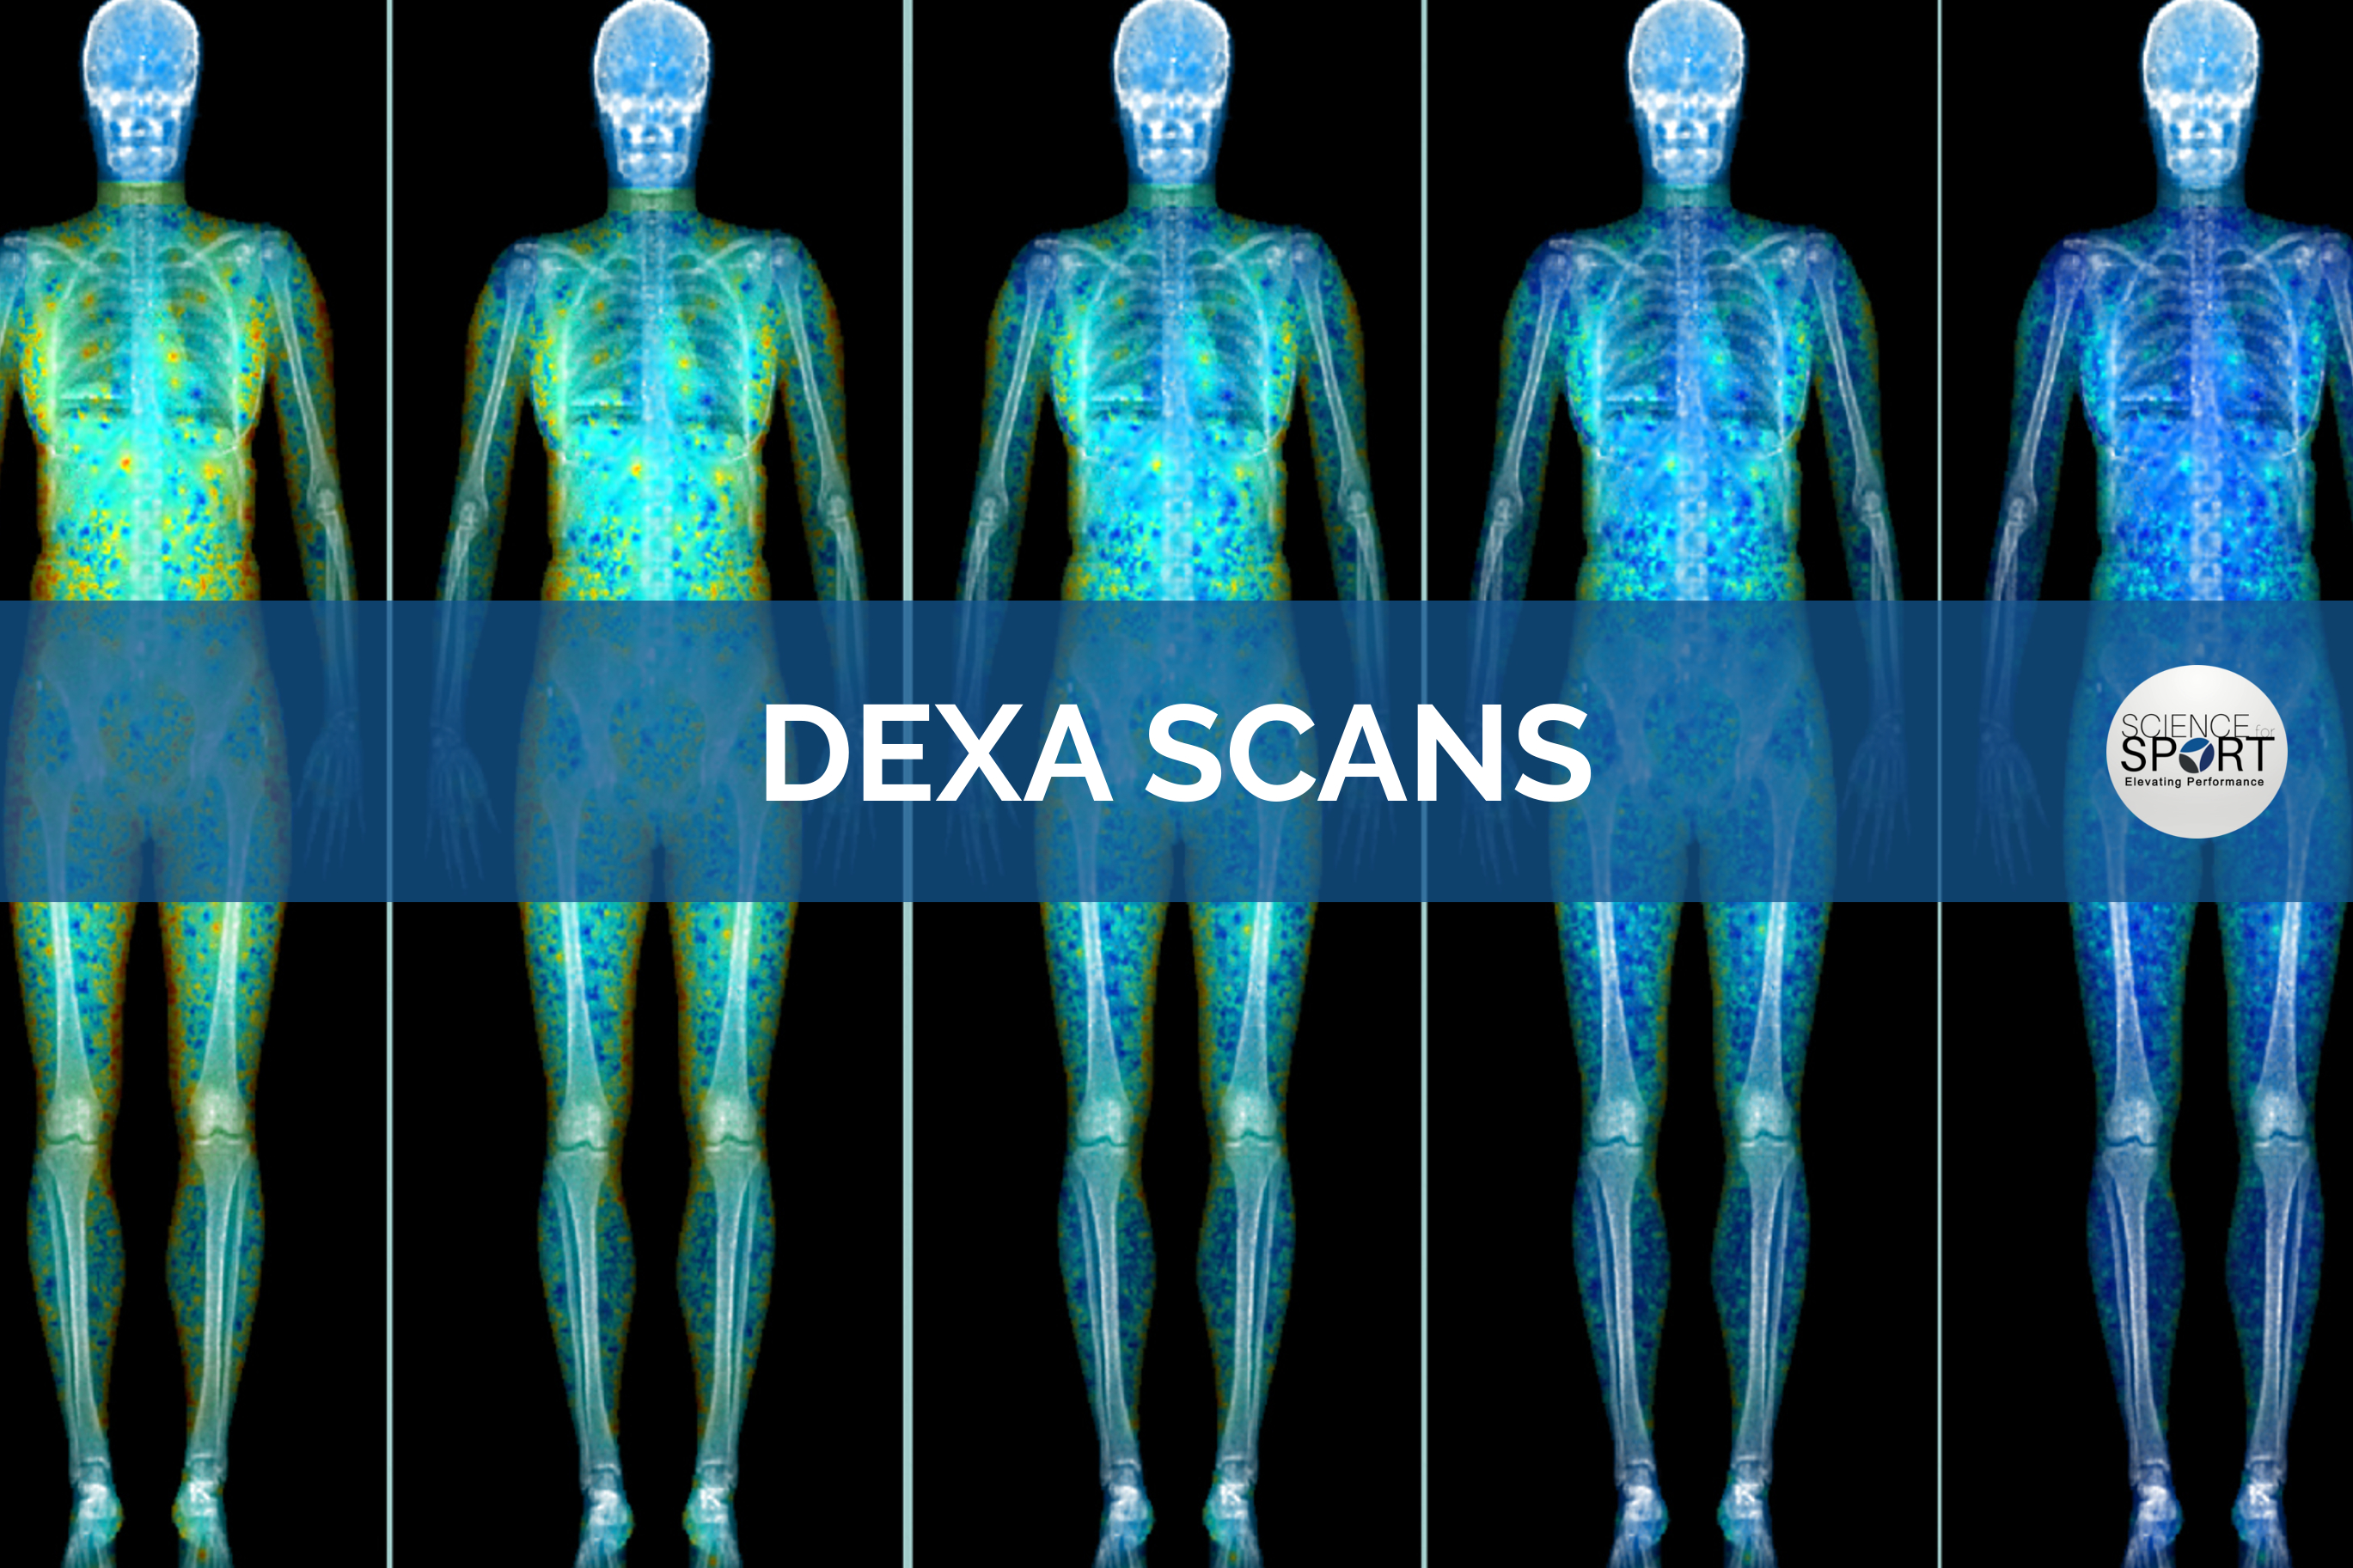 Dexa Scans Science For Sport